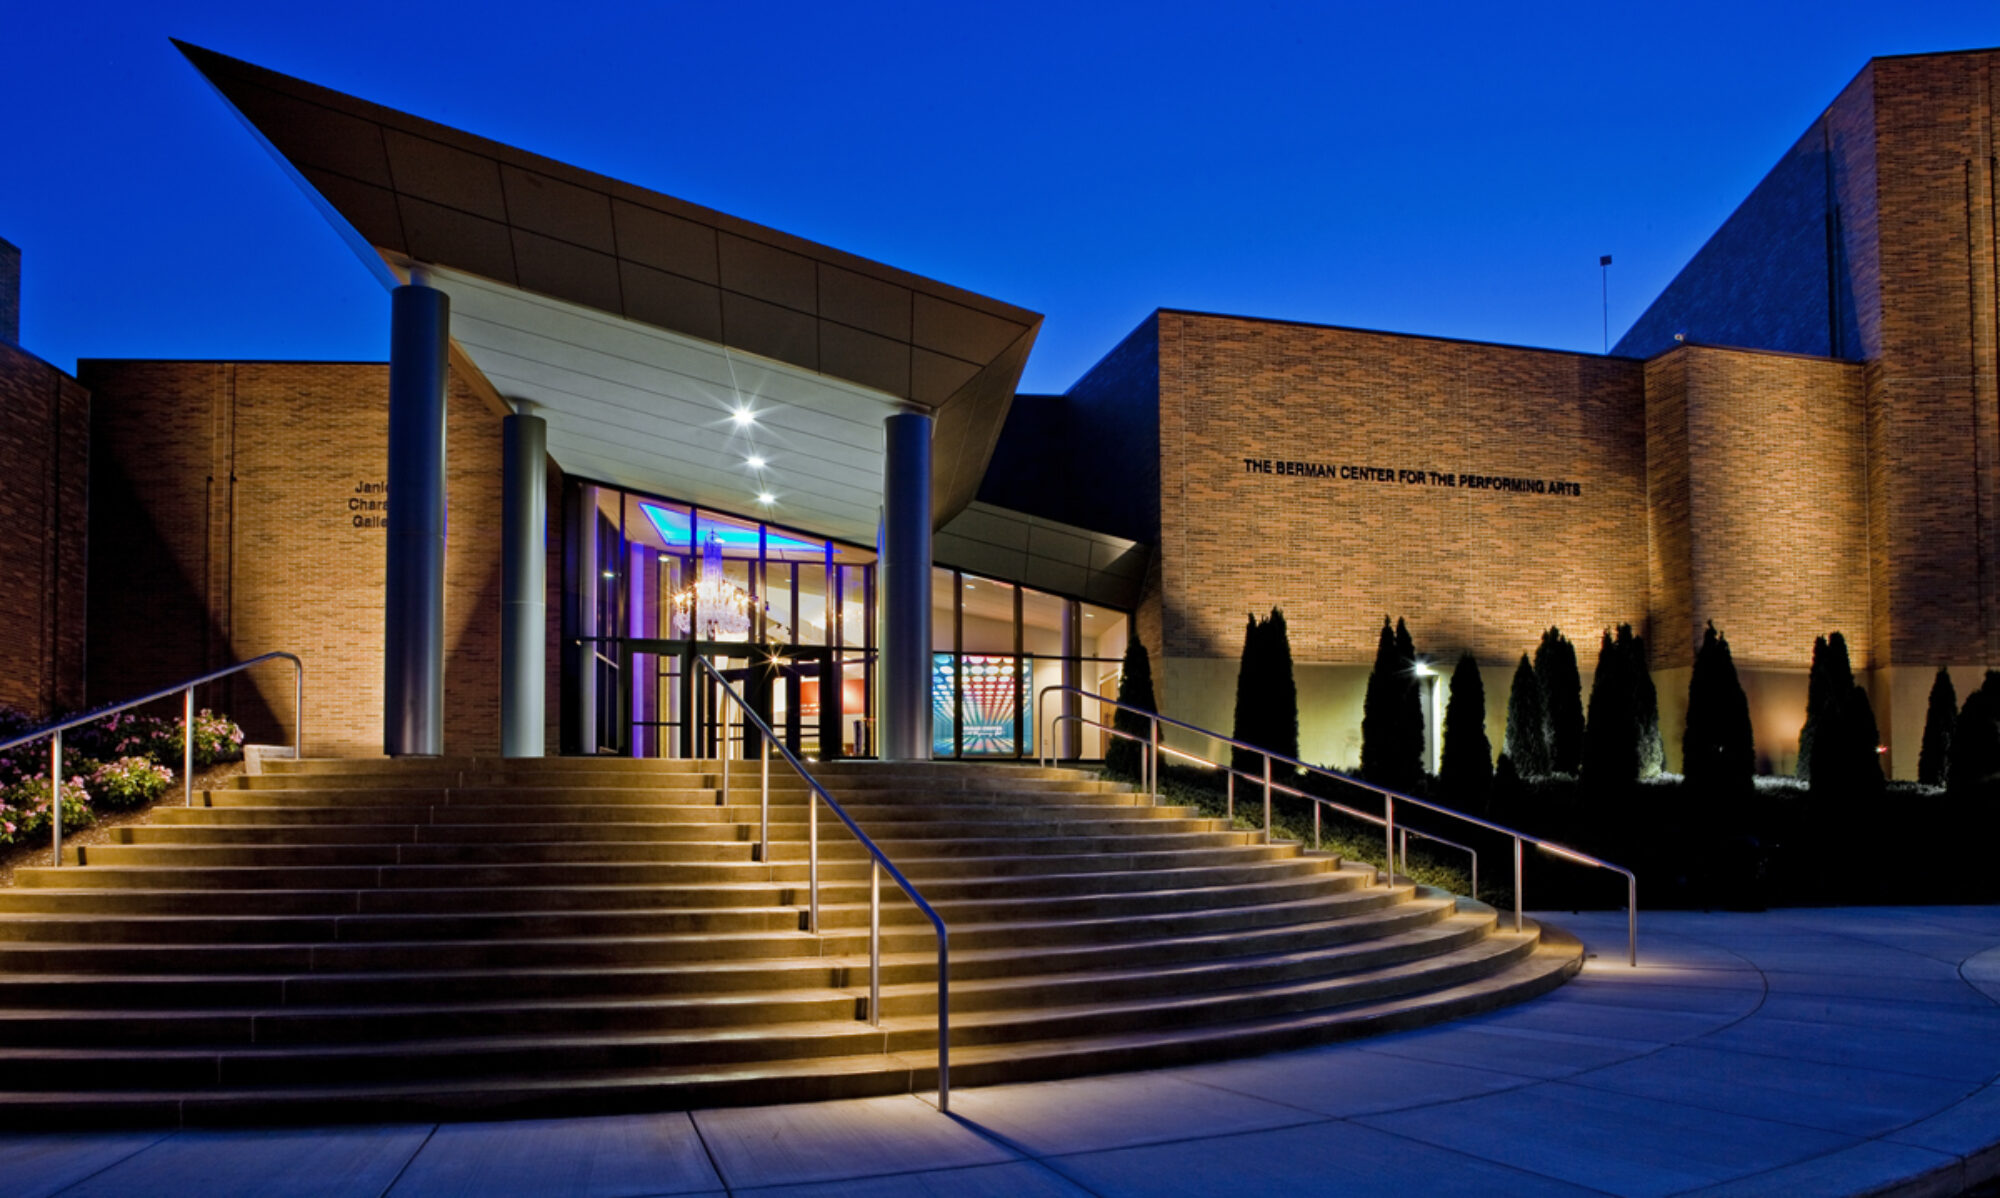 THE BERMAN Center for the Performing Arts